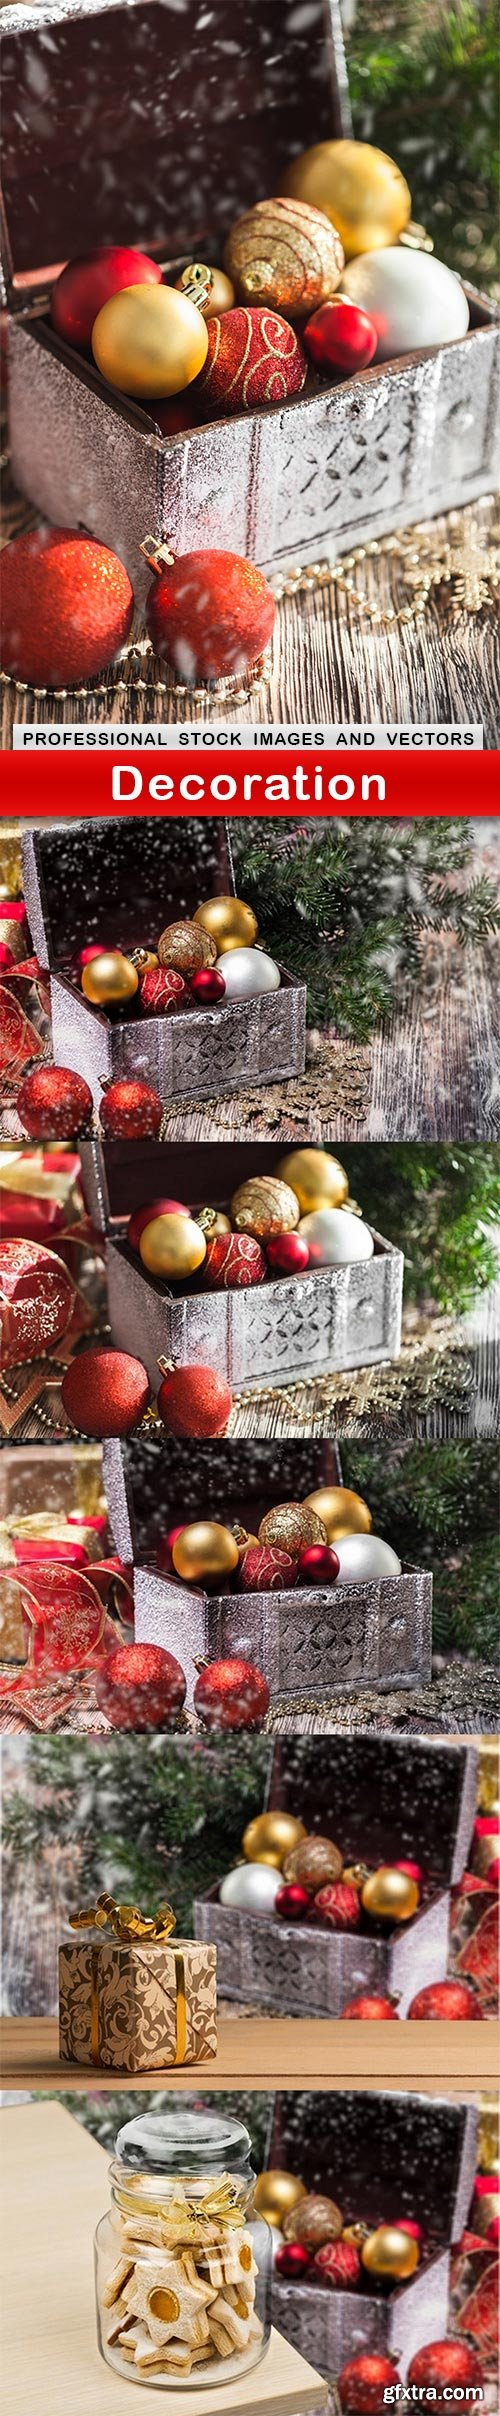 Decoration - 6 UHQ JPEG